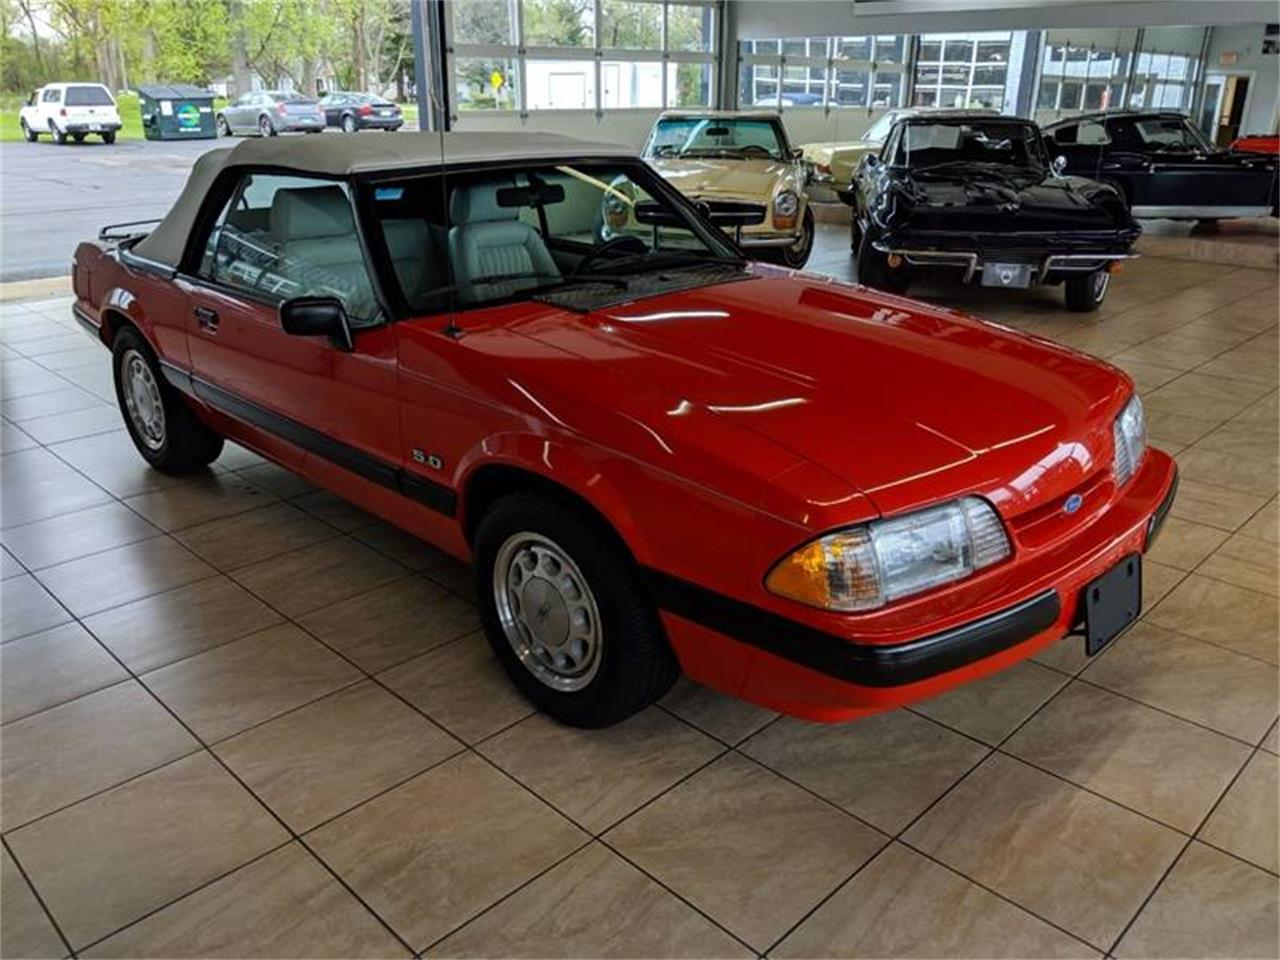 Large Picture of 1989 Ford Mustang located in Illinois Offered by Classics & Custom Auto - Q2R9